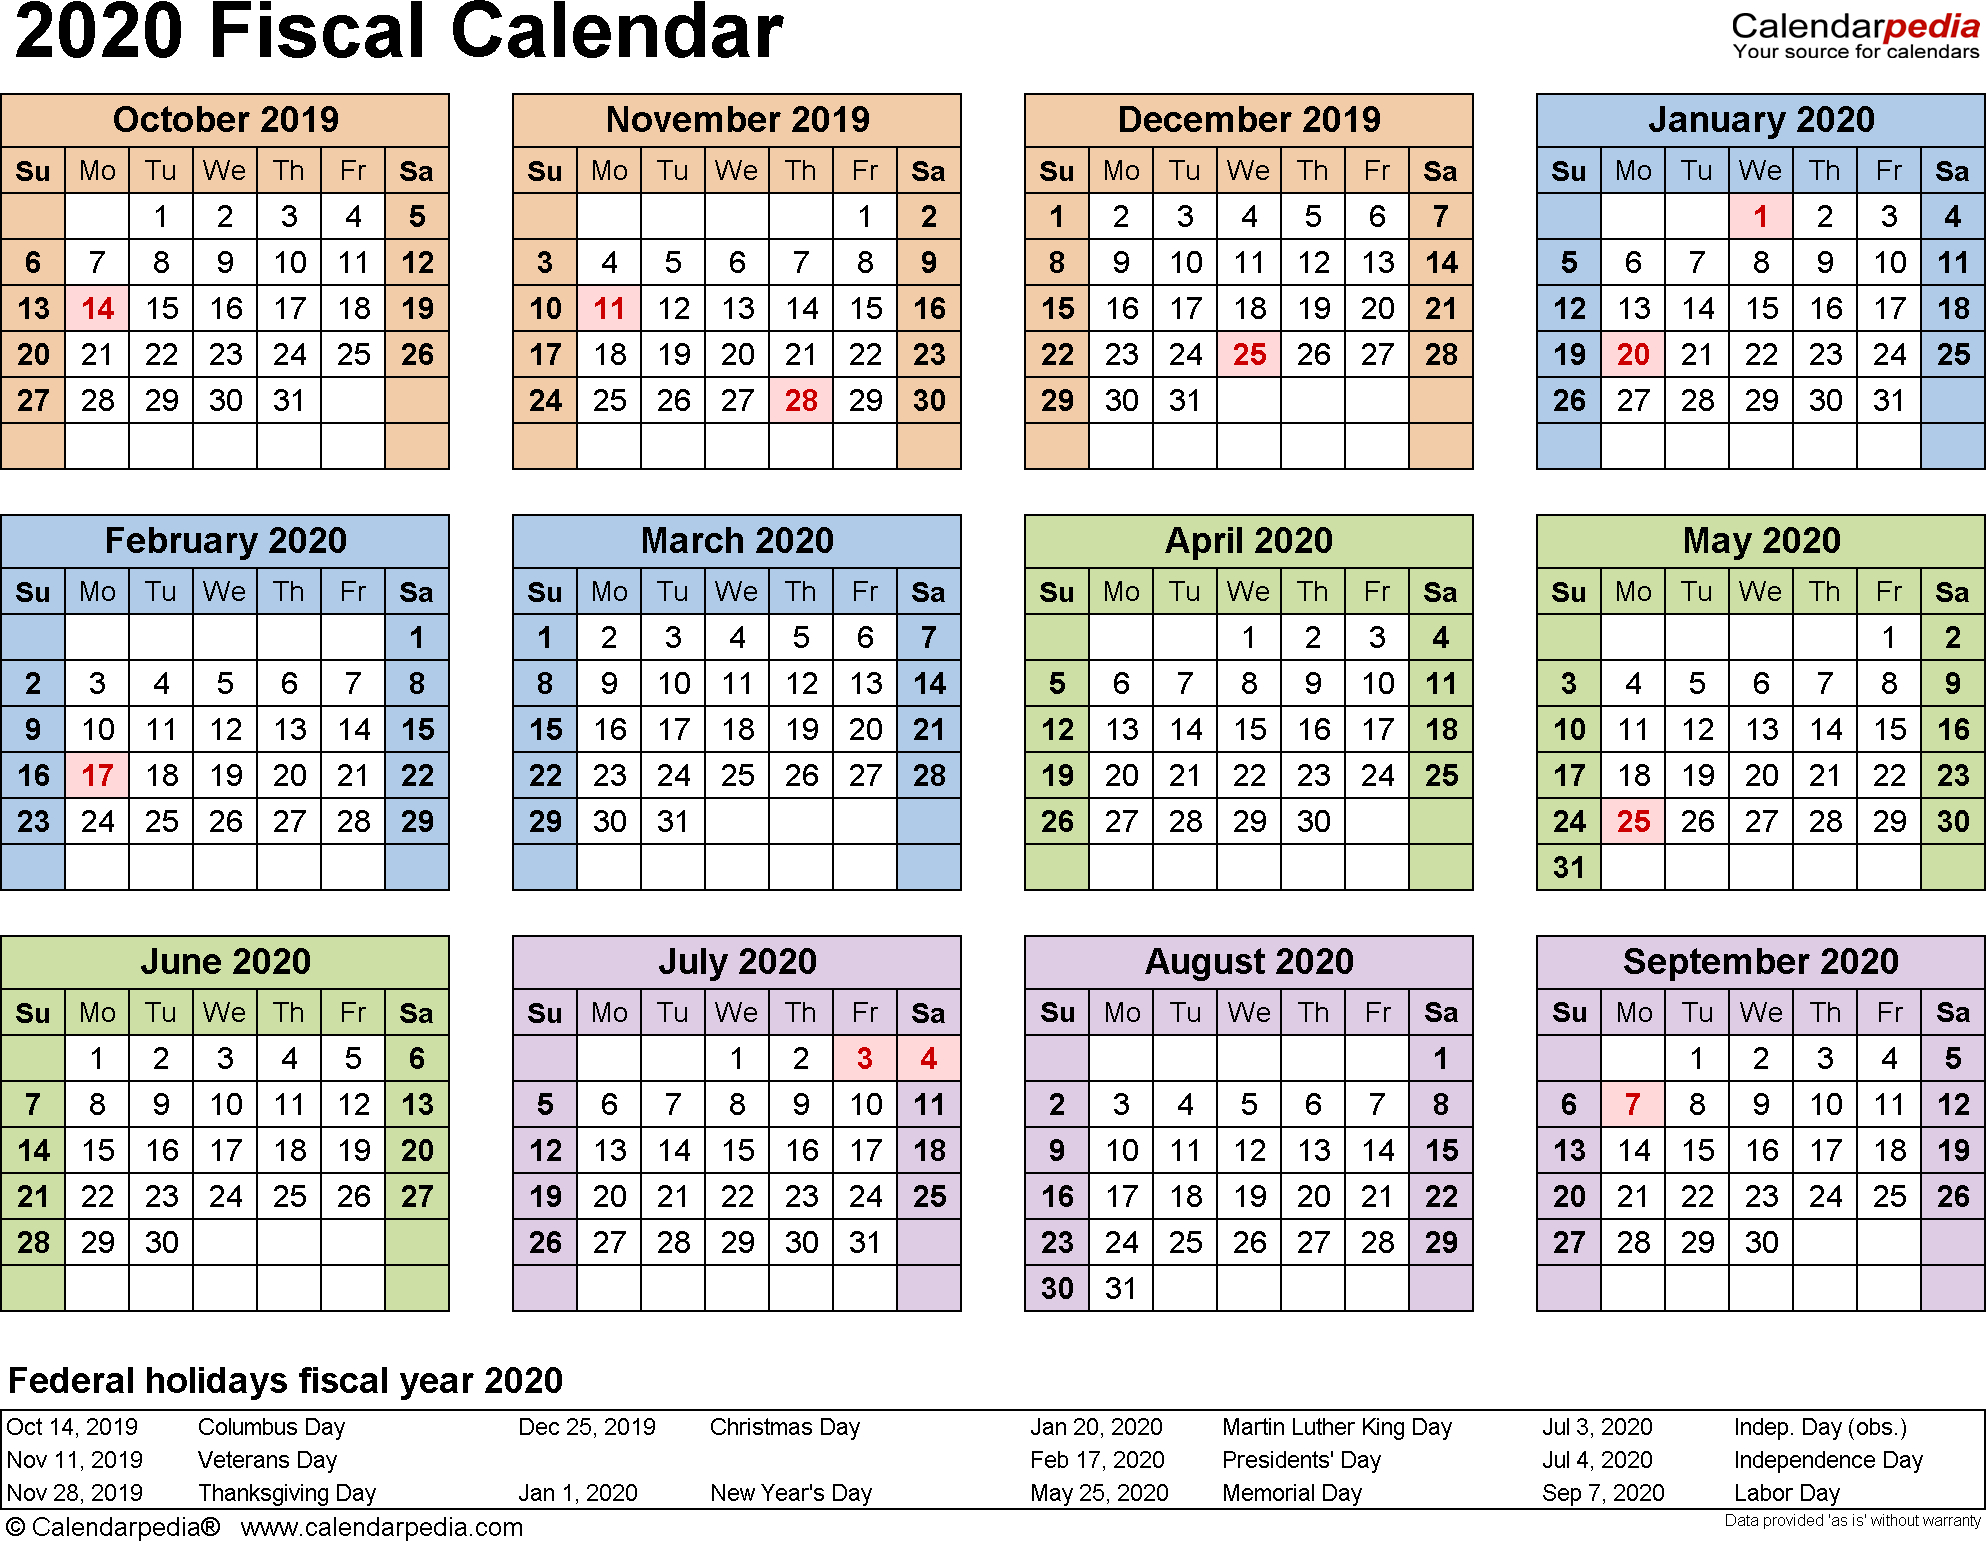 Fiscal Calendars 2020 As Free Printable Word Templates with regard to Year At A Glance Calendar 2020